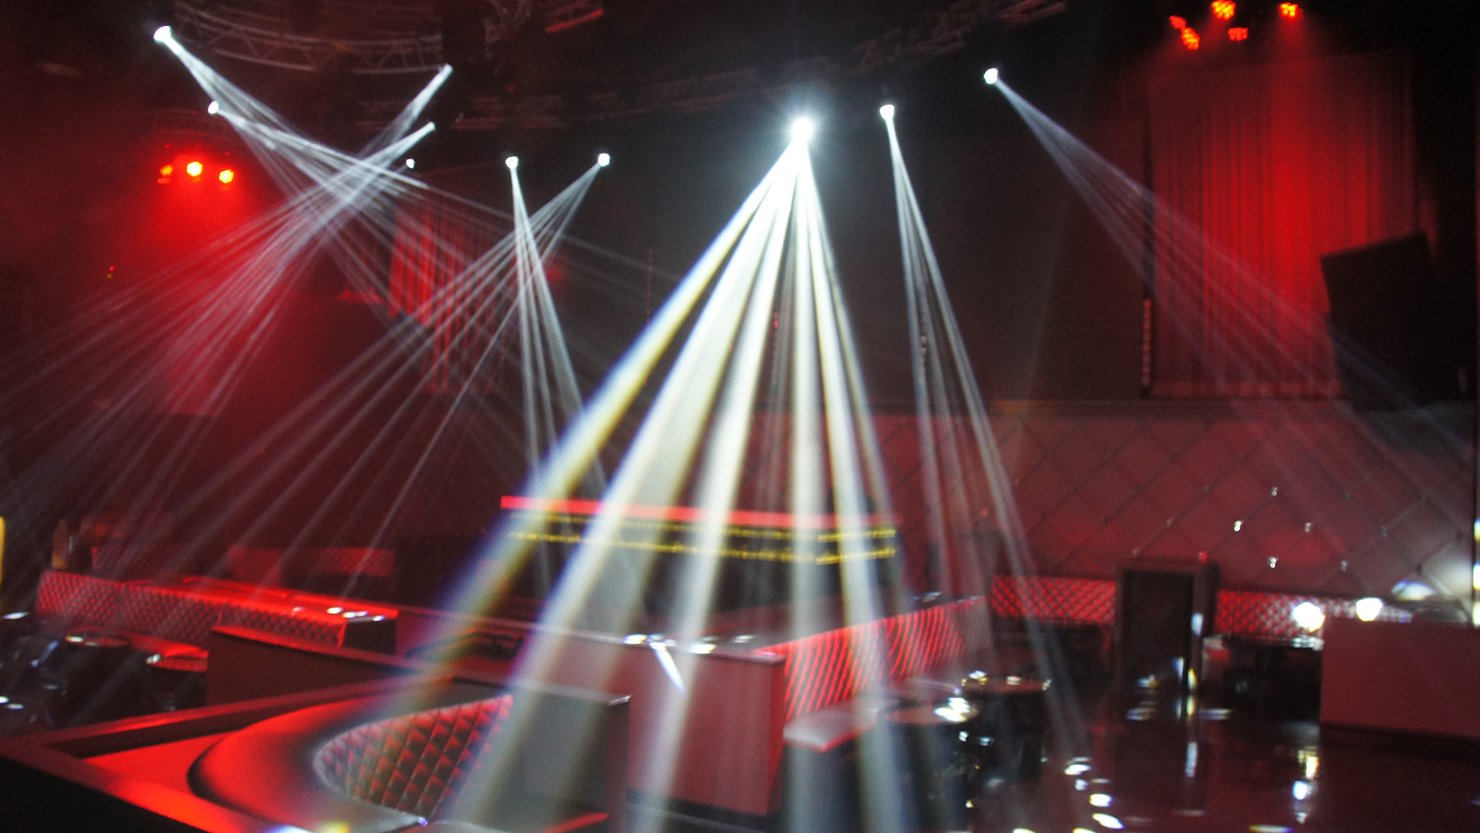 chauvet intimidator beam led 350 manual